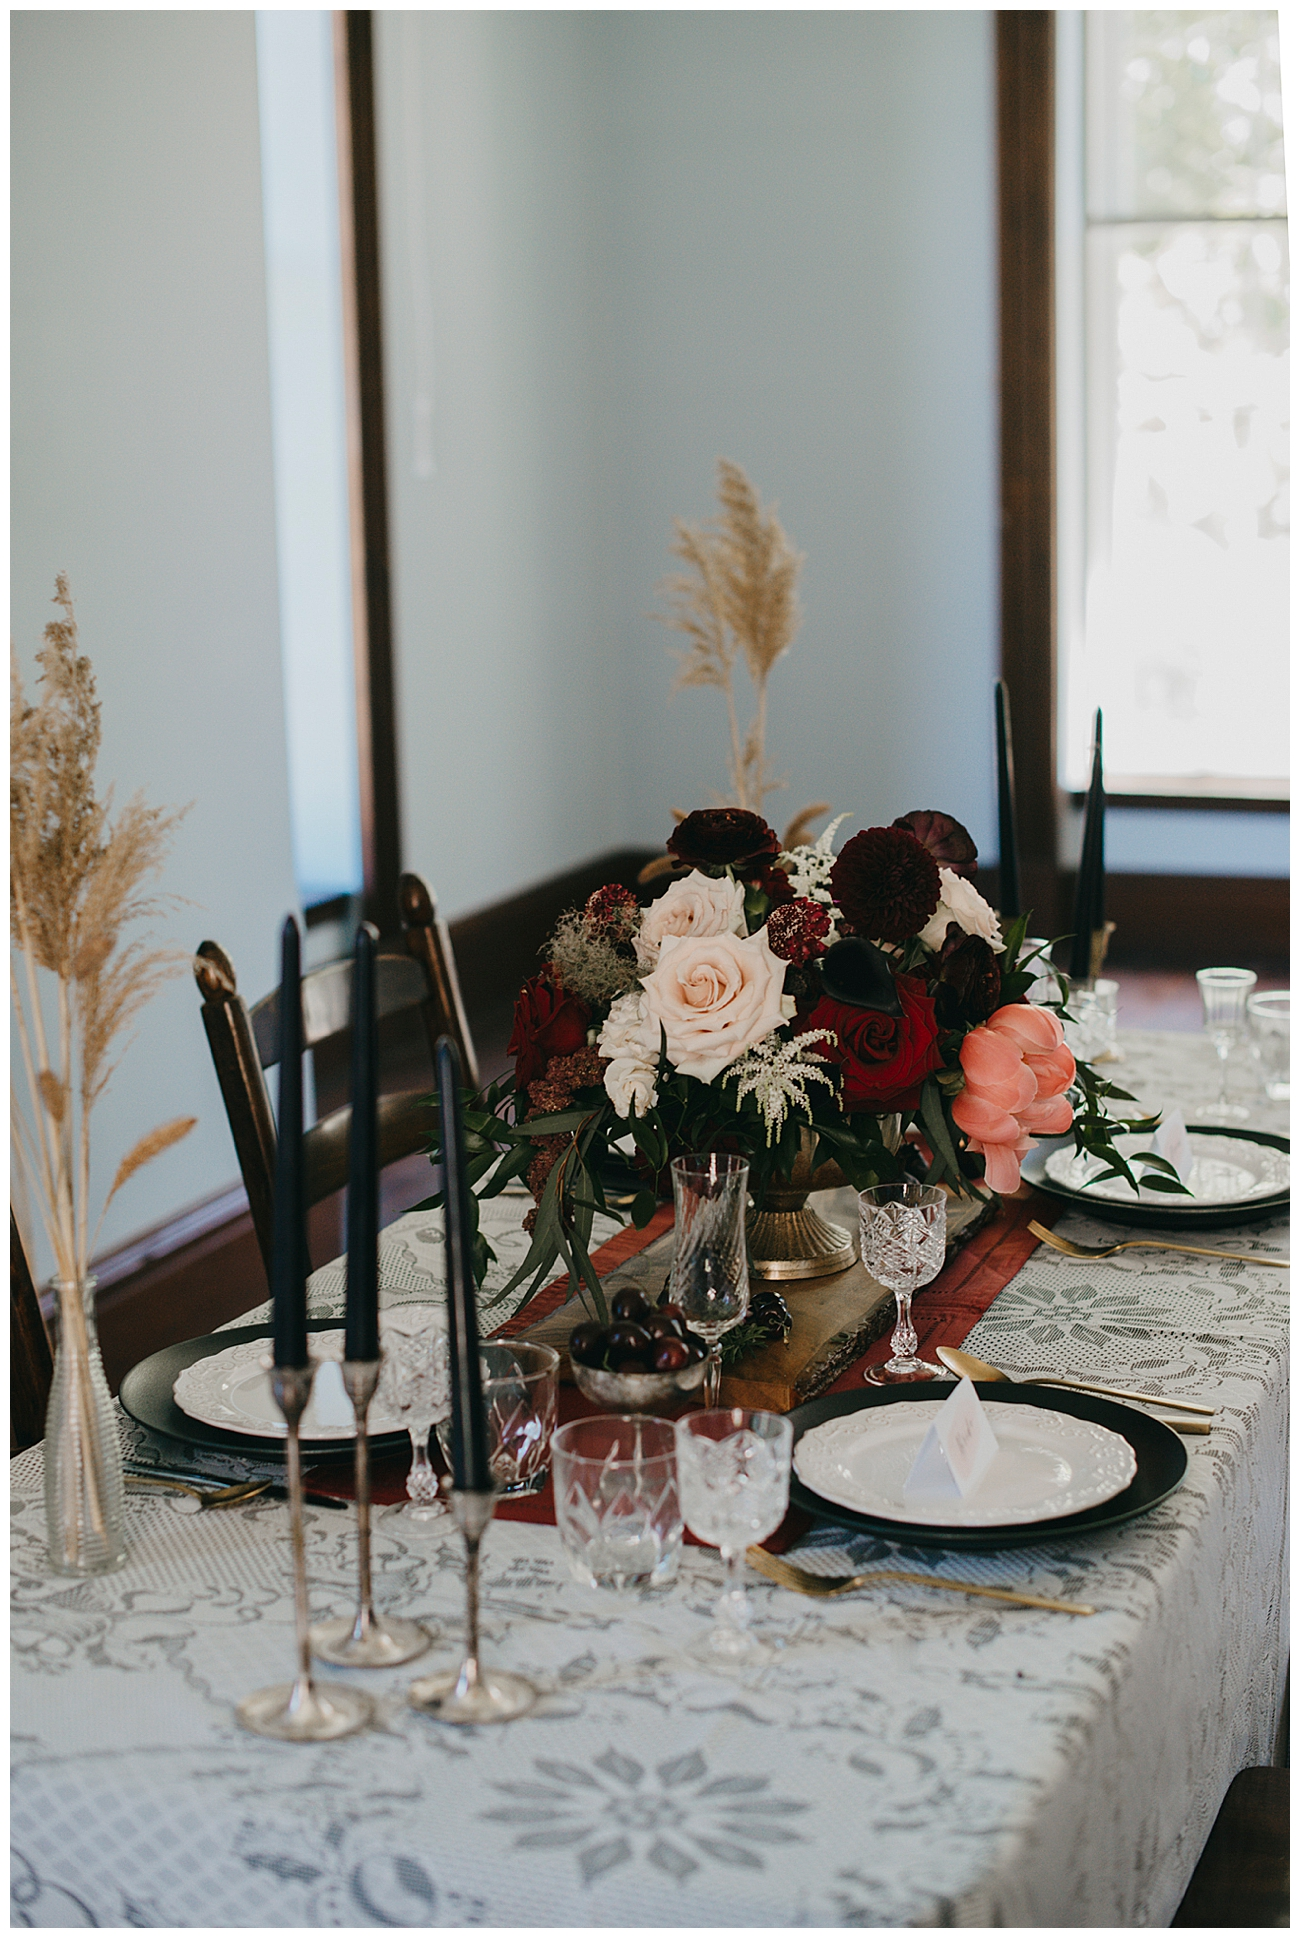 Moody Vintage Wedding Tabletop